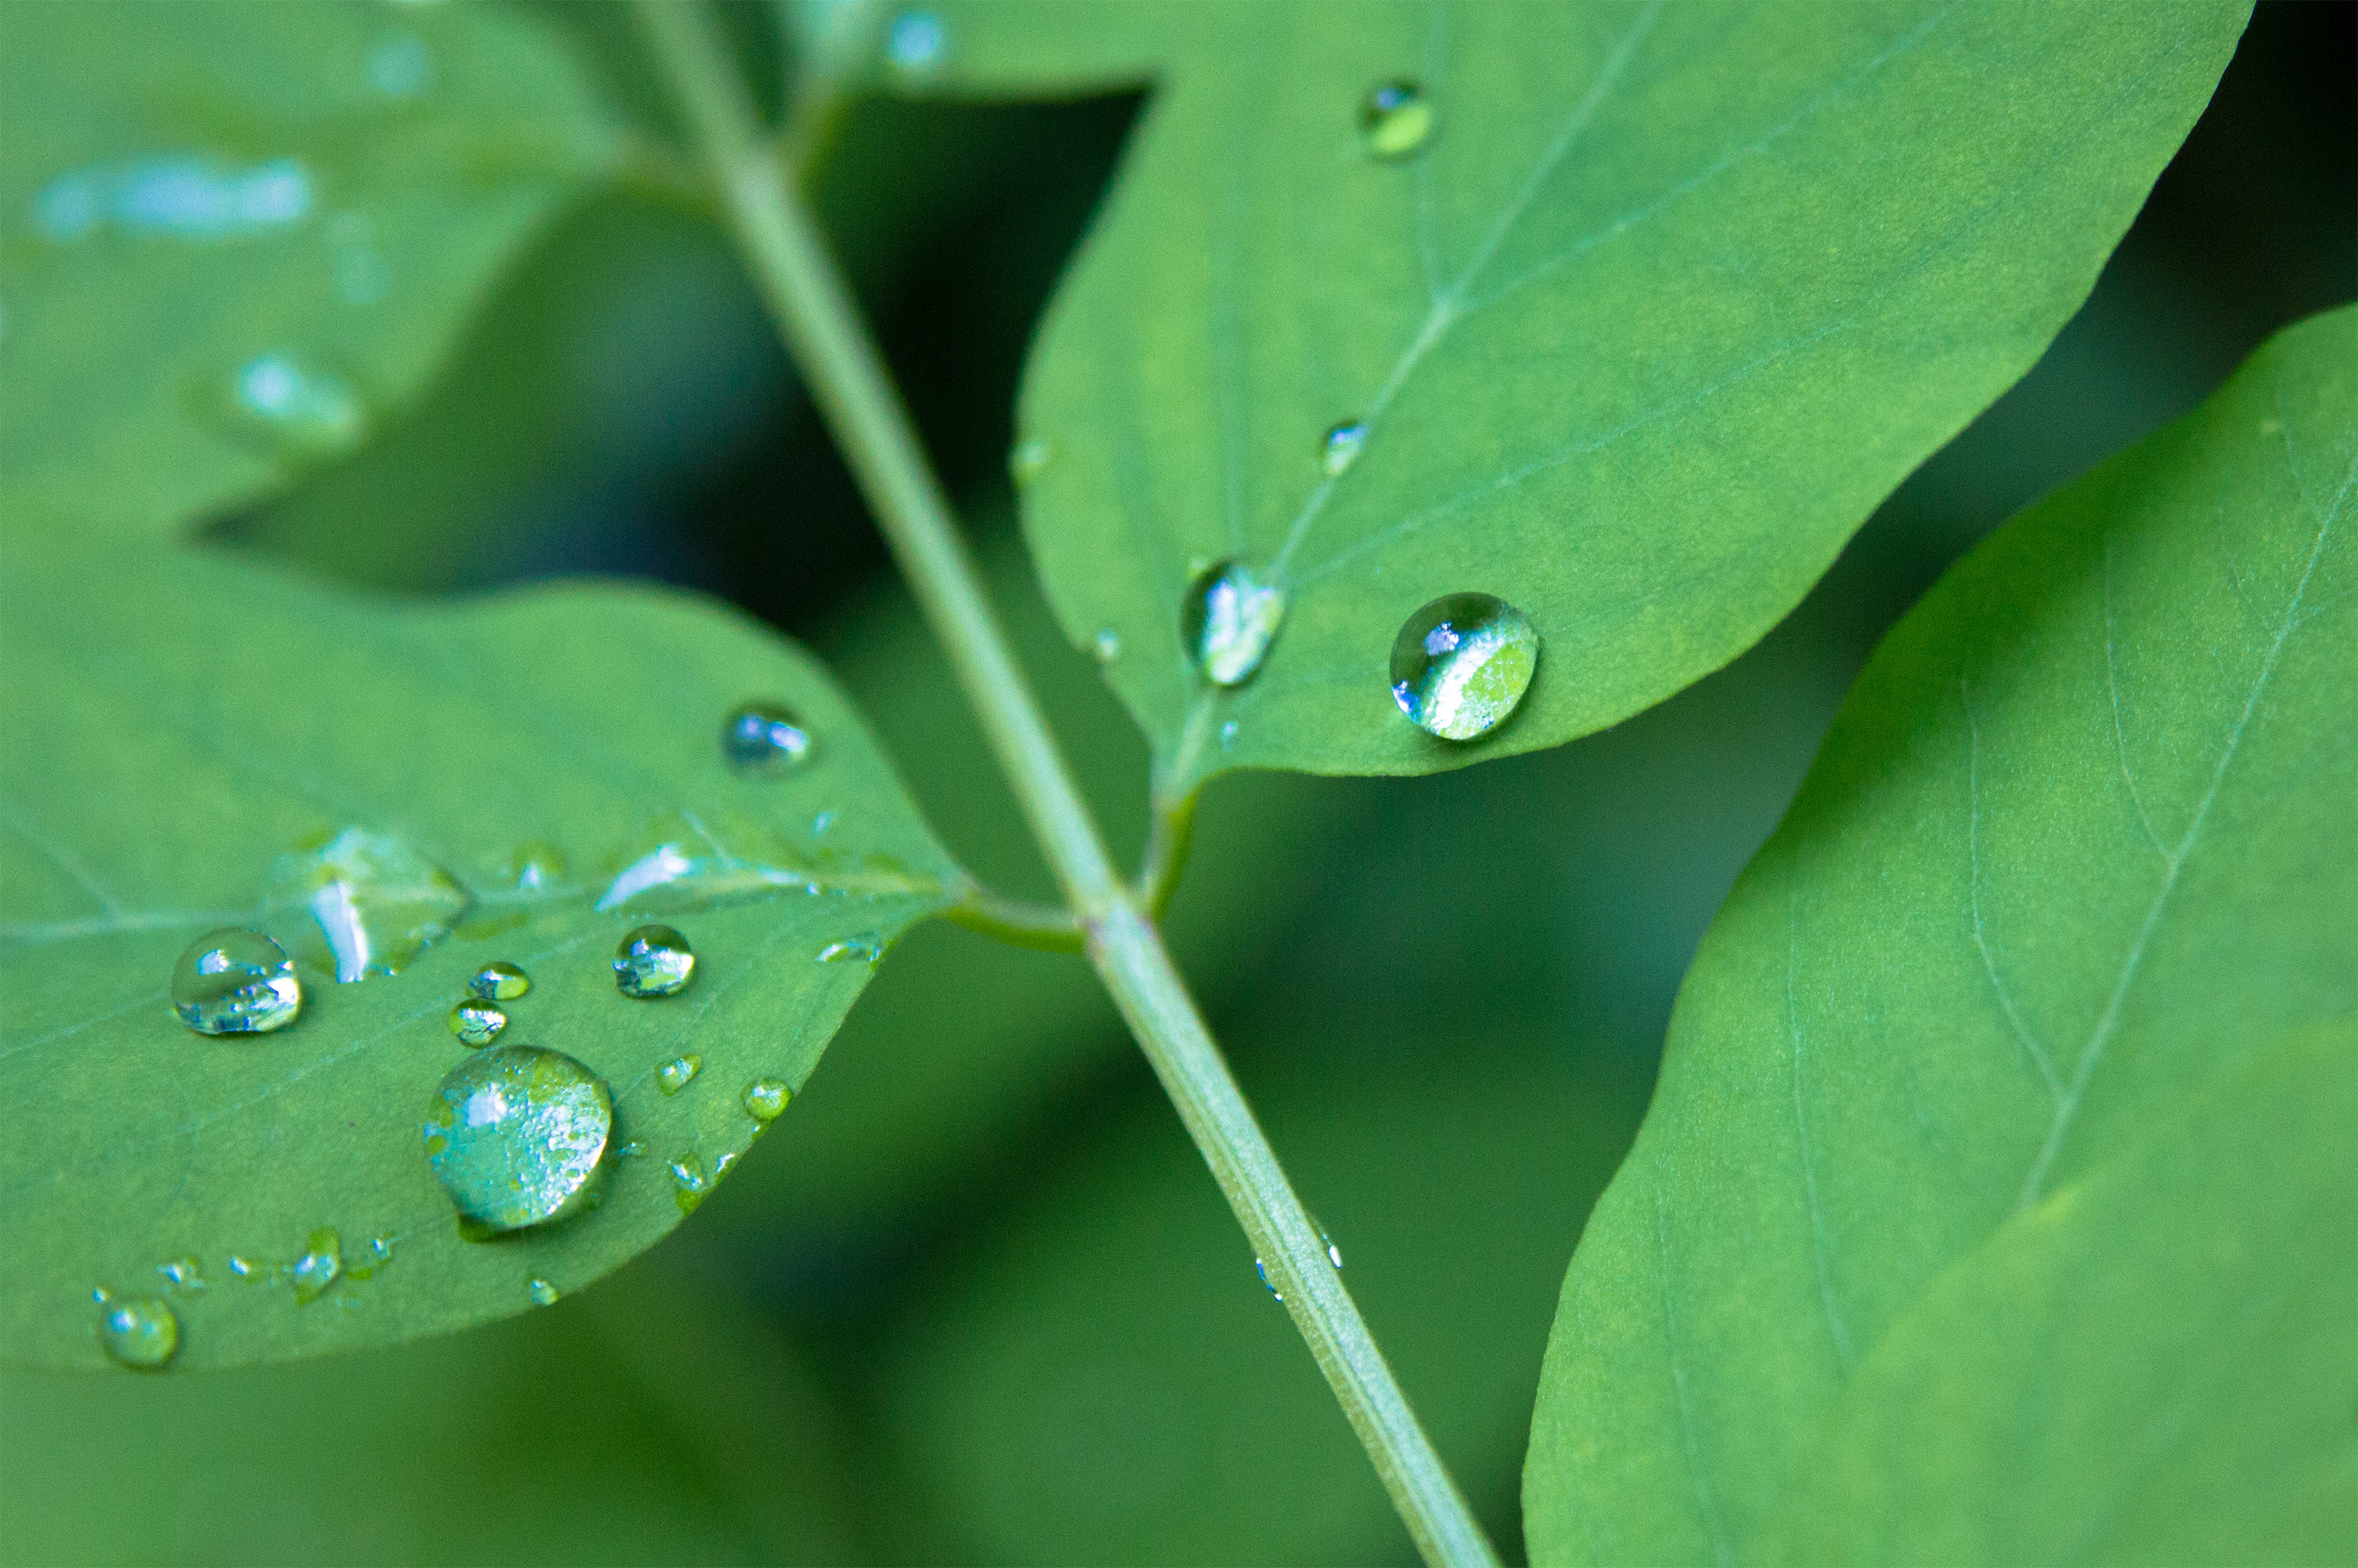 Water drops, Drops, Green, Leaf, Water, HQ Photo